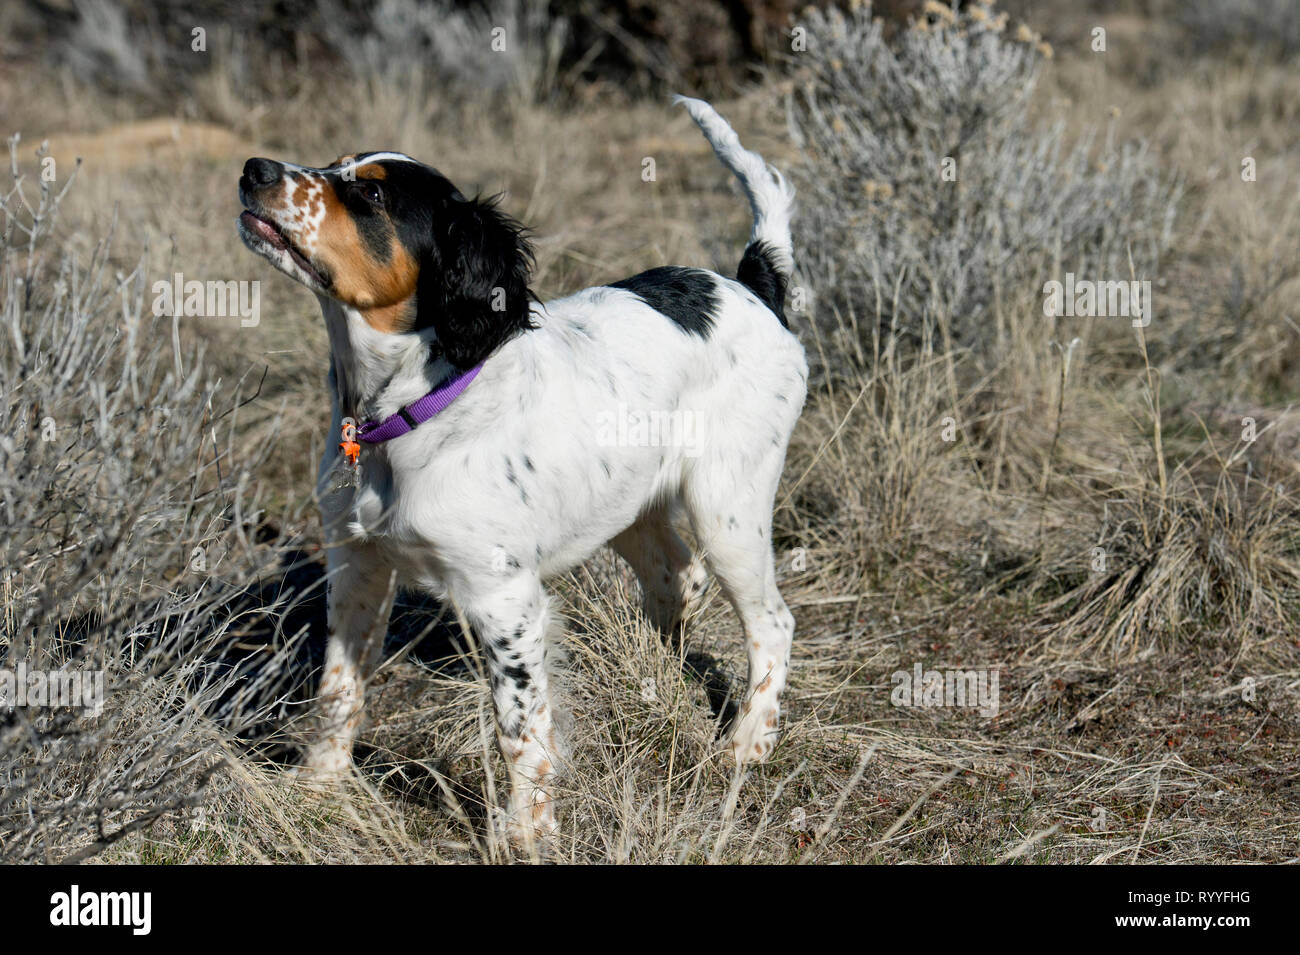 Four-and-a half month old English setter puppy watching dog trainer - Stock Image